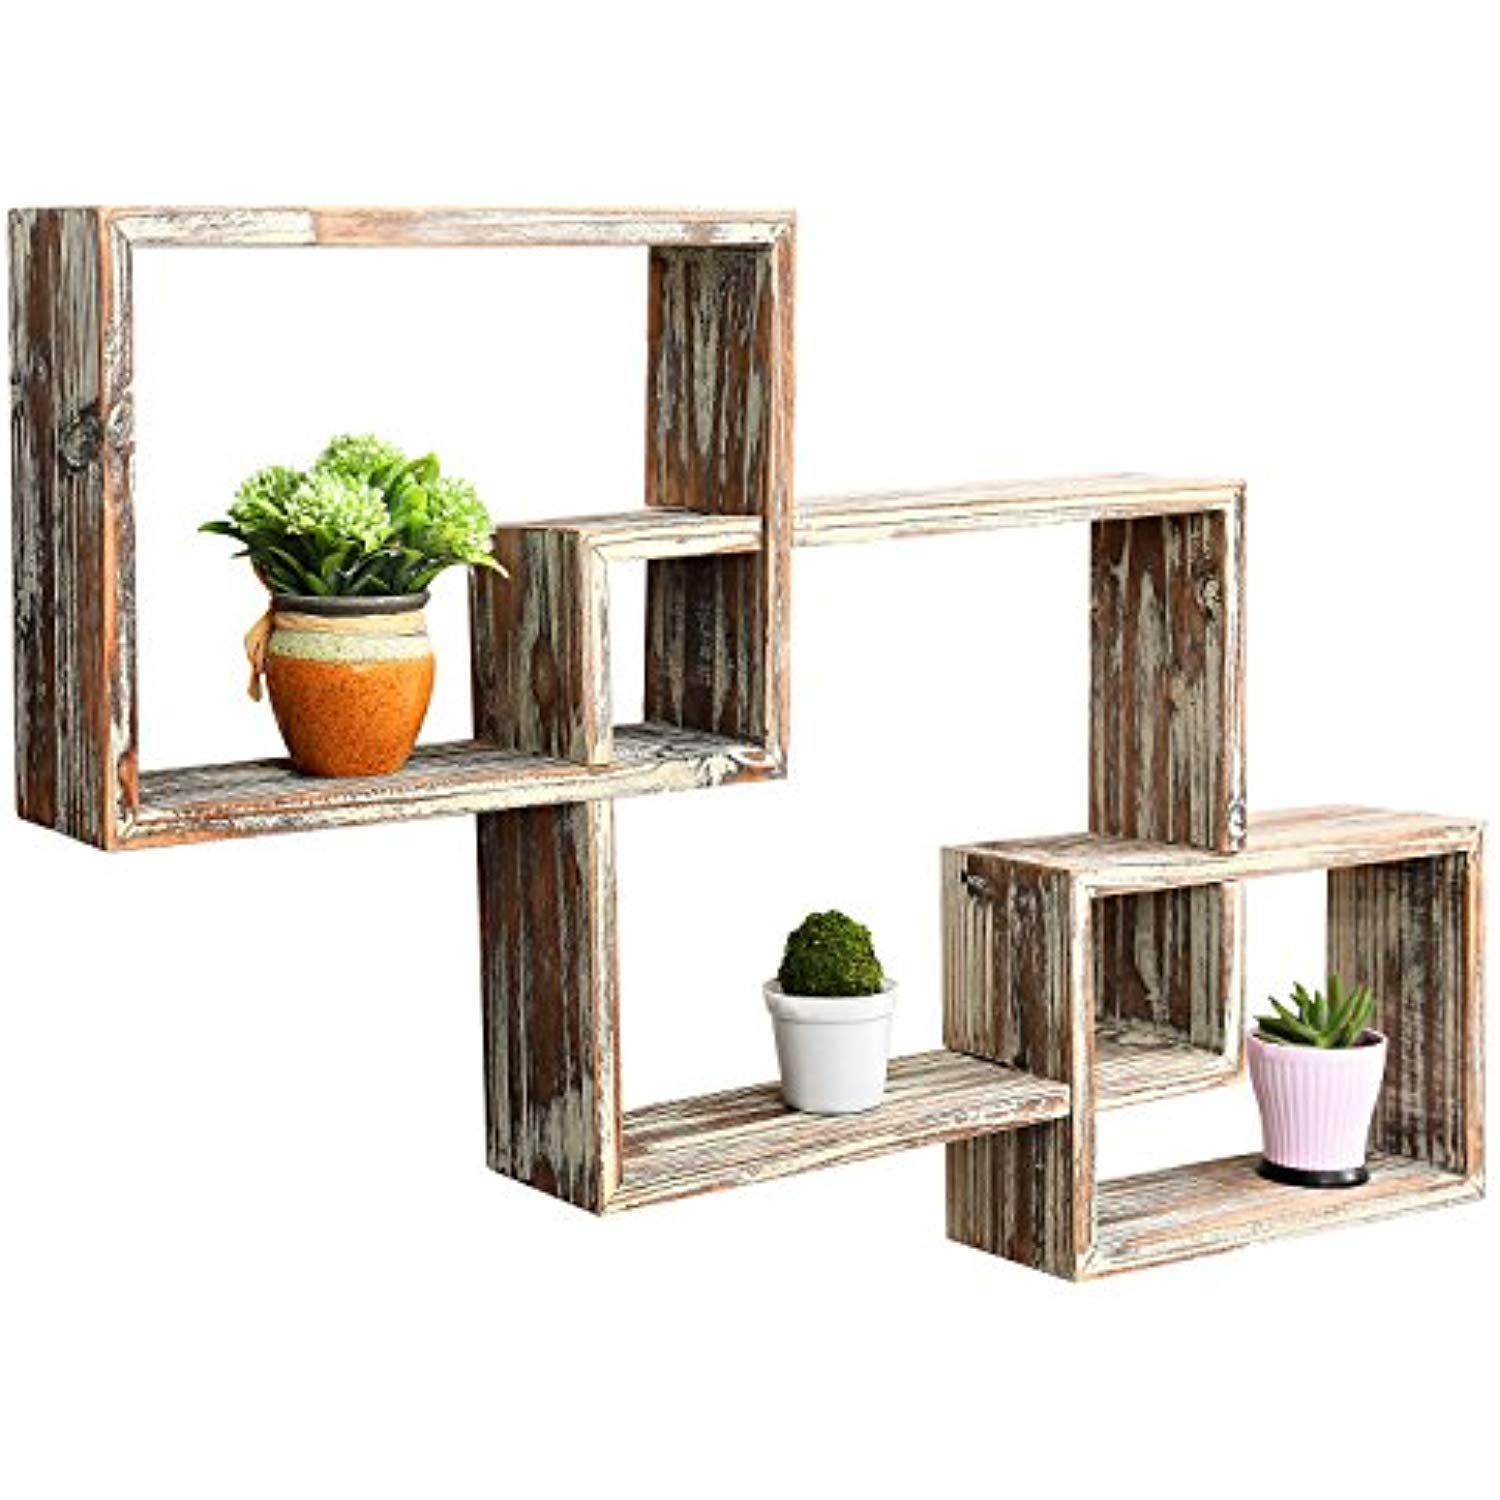 Mygift Country Rustic 3 Tier Floating Box Shelves Decorative Wood Wall Mounted Display Shelf Brown Geometric Shelves Wall Mounted Bookshelves Box Shelves